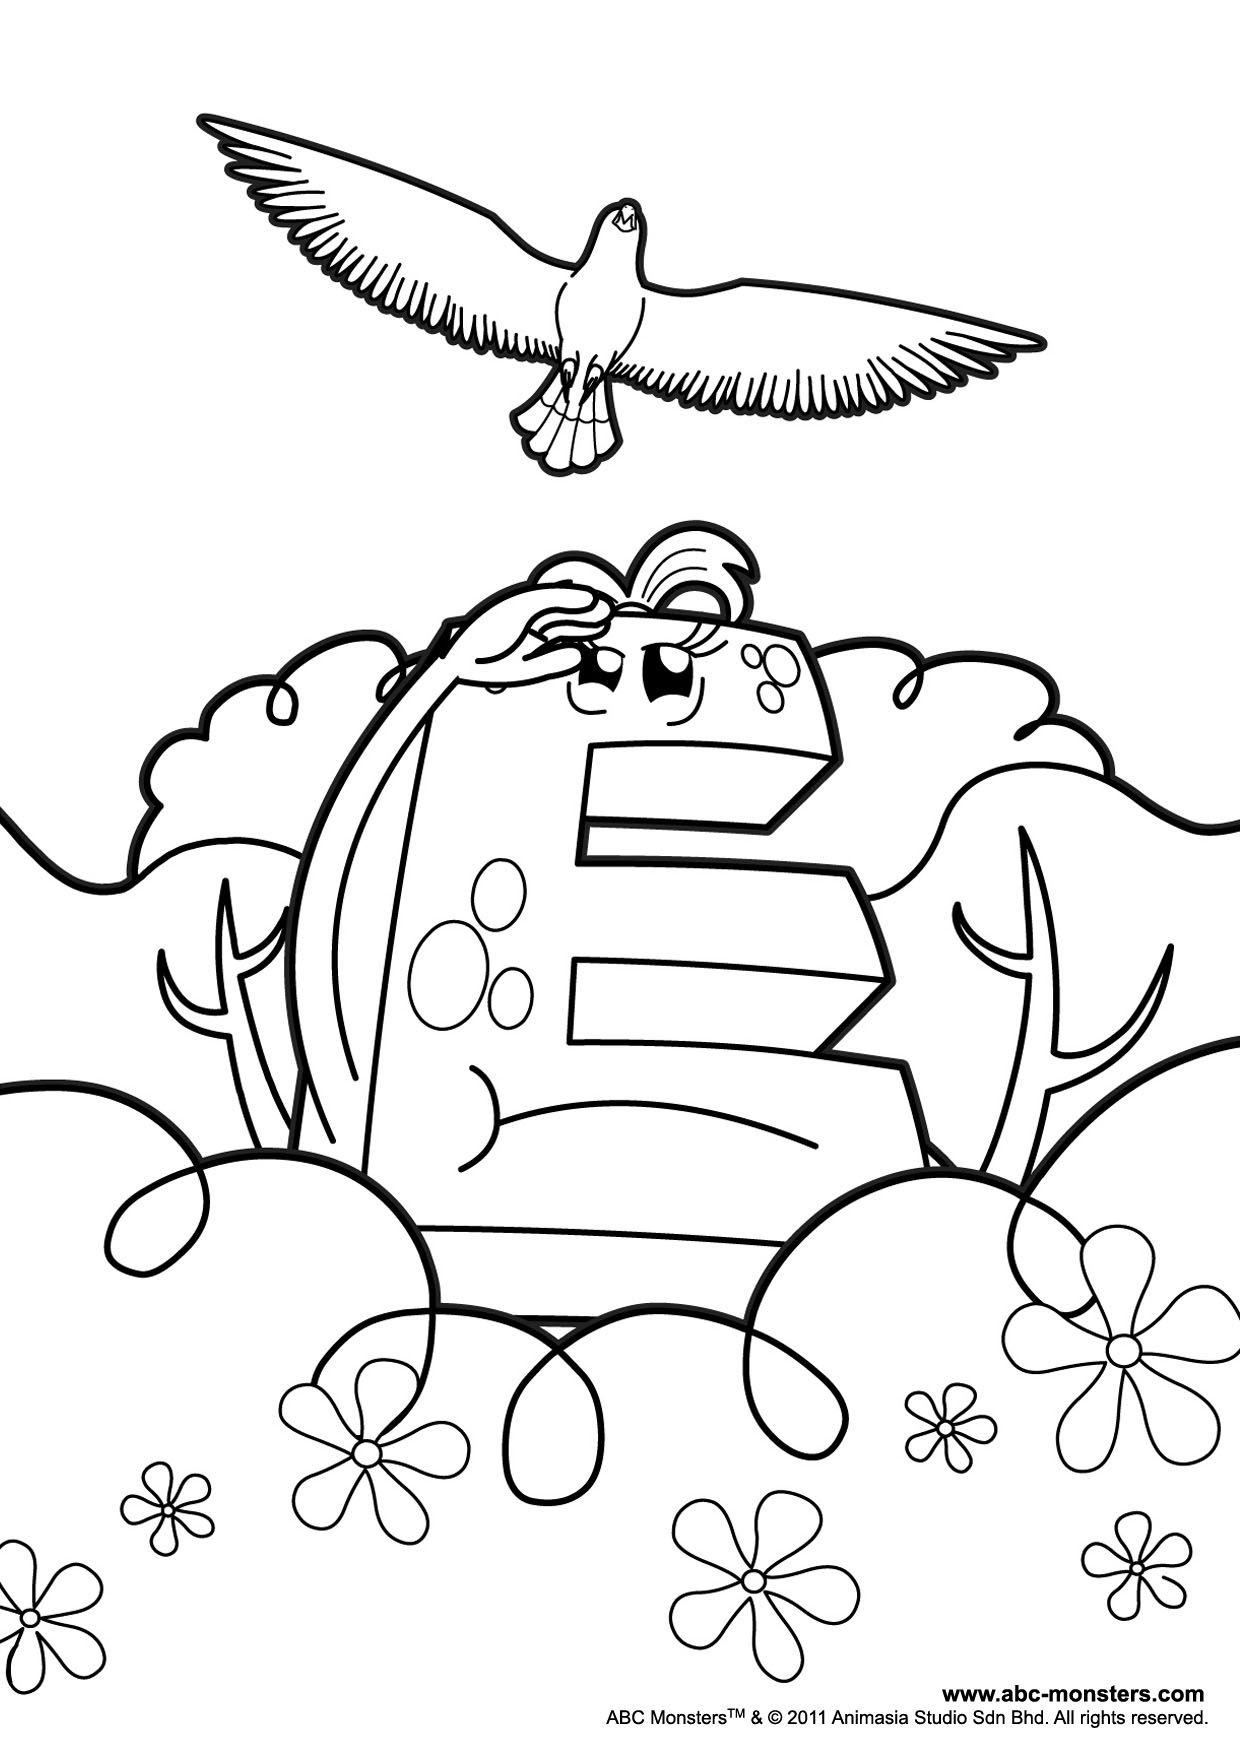 bret hart coloring pages - photo#25